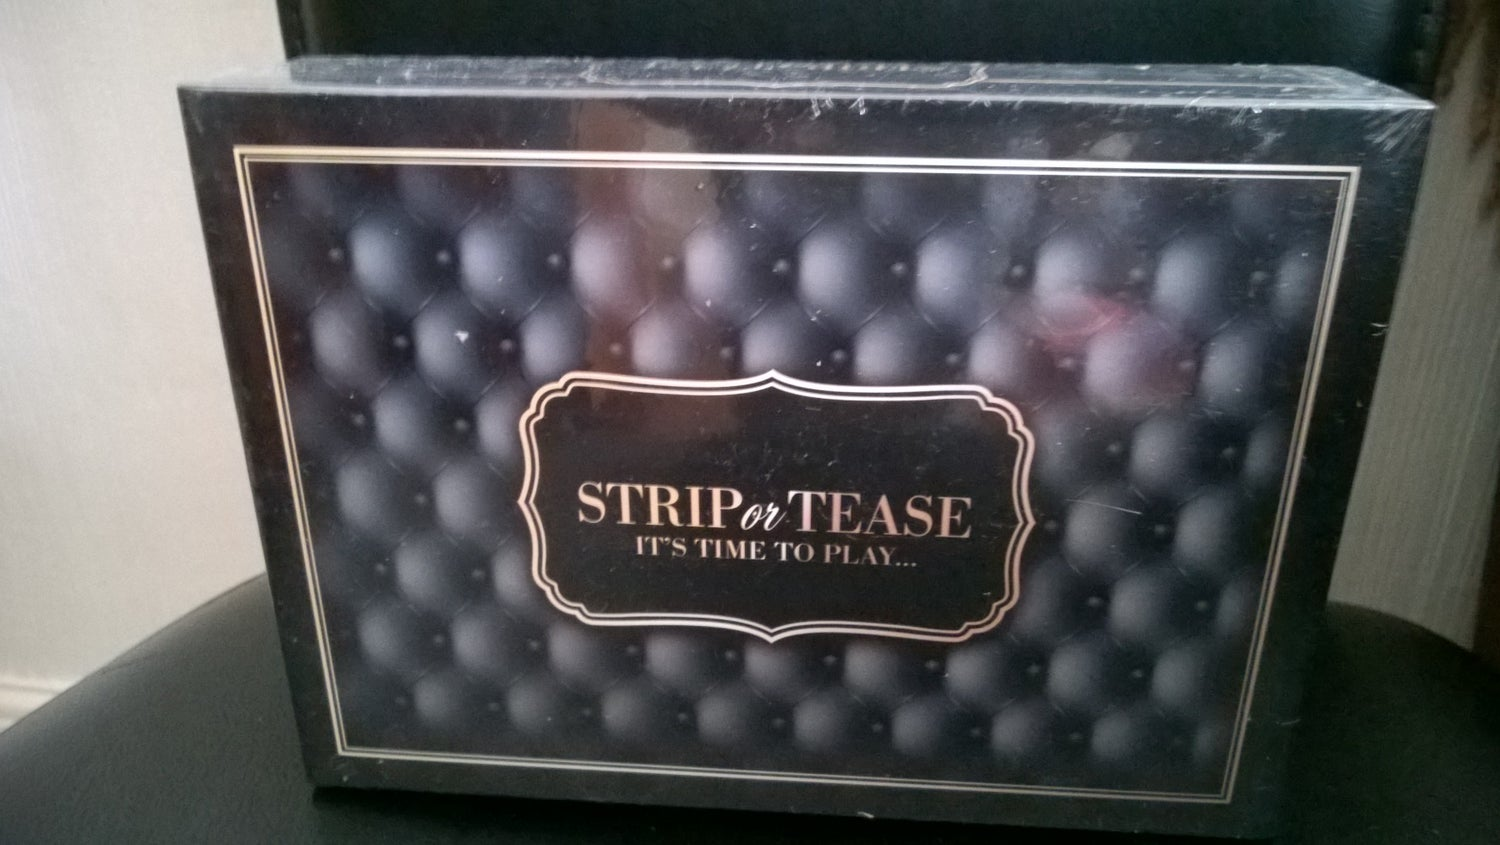 Image of Strip or tease Board Game